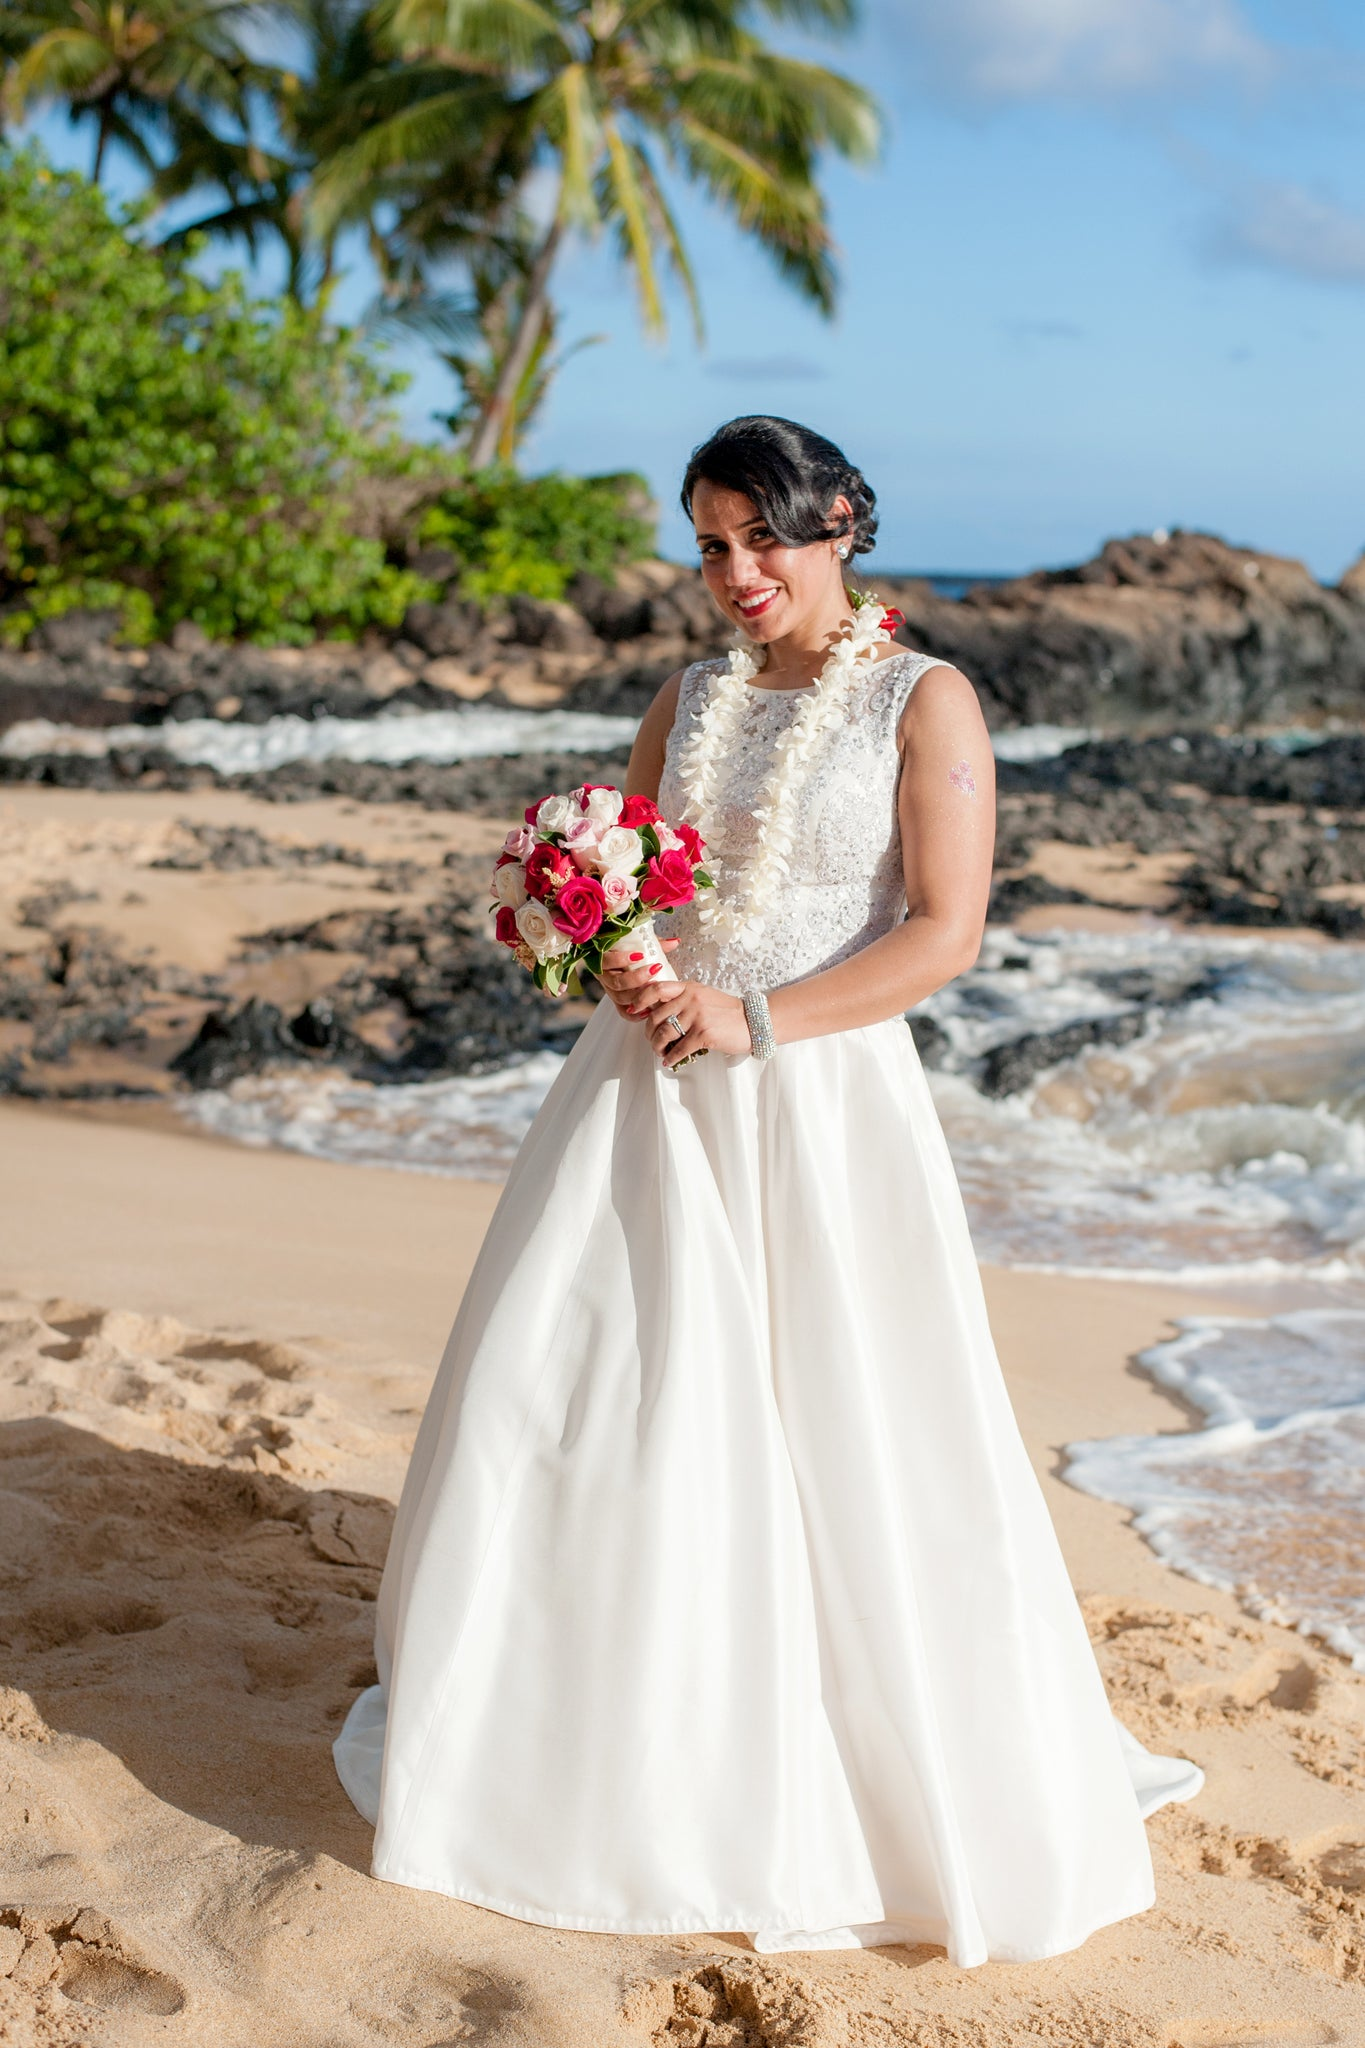 Bride poses on a beach in Maui, Hawaii